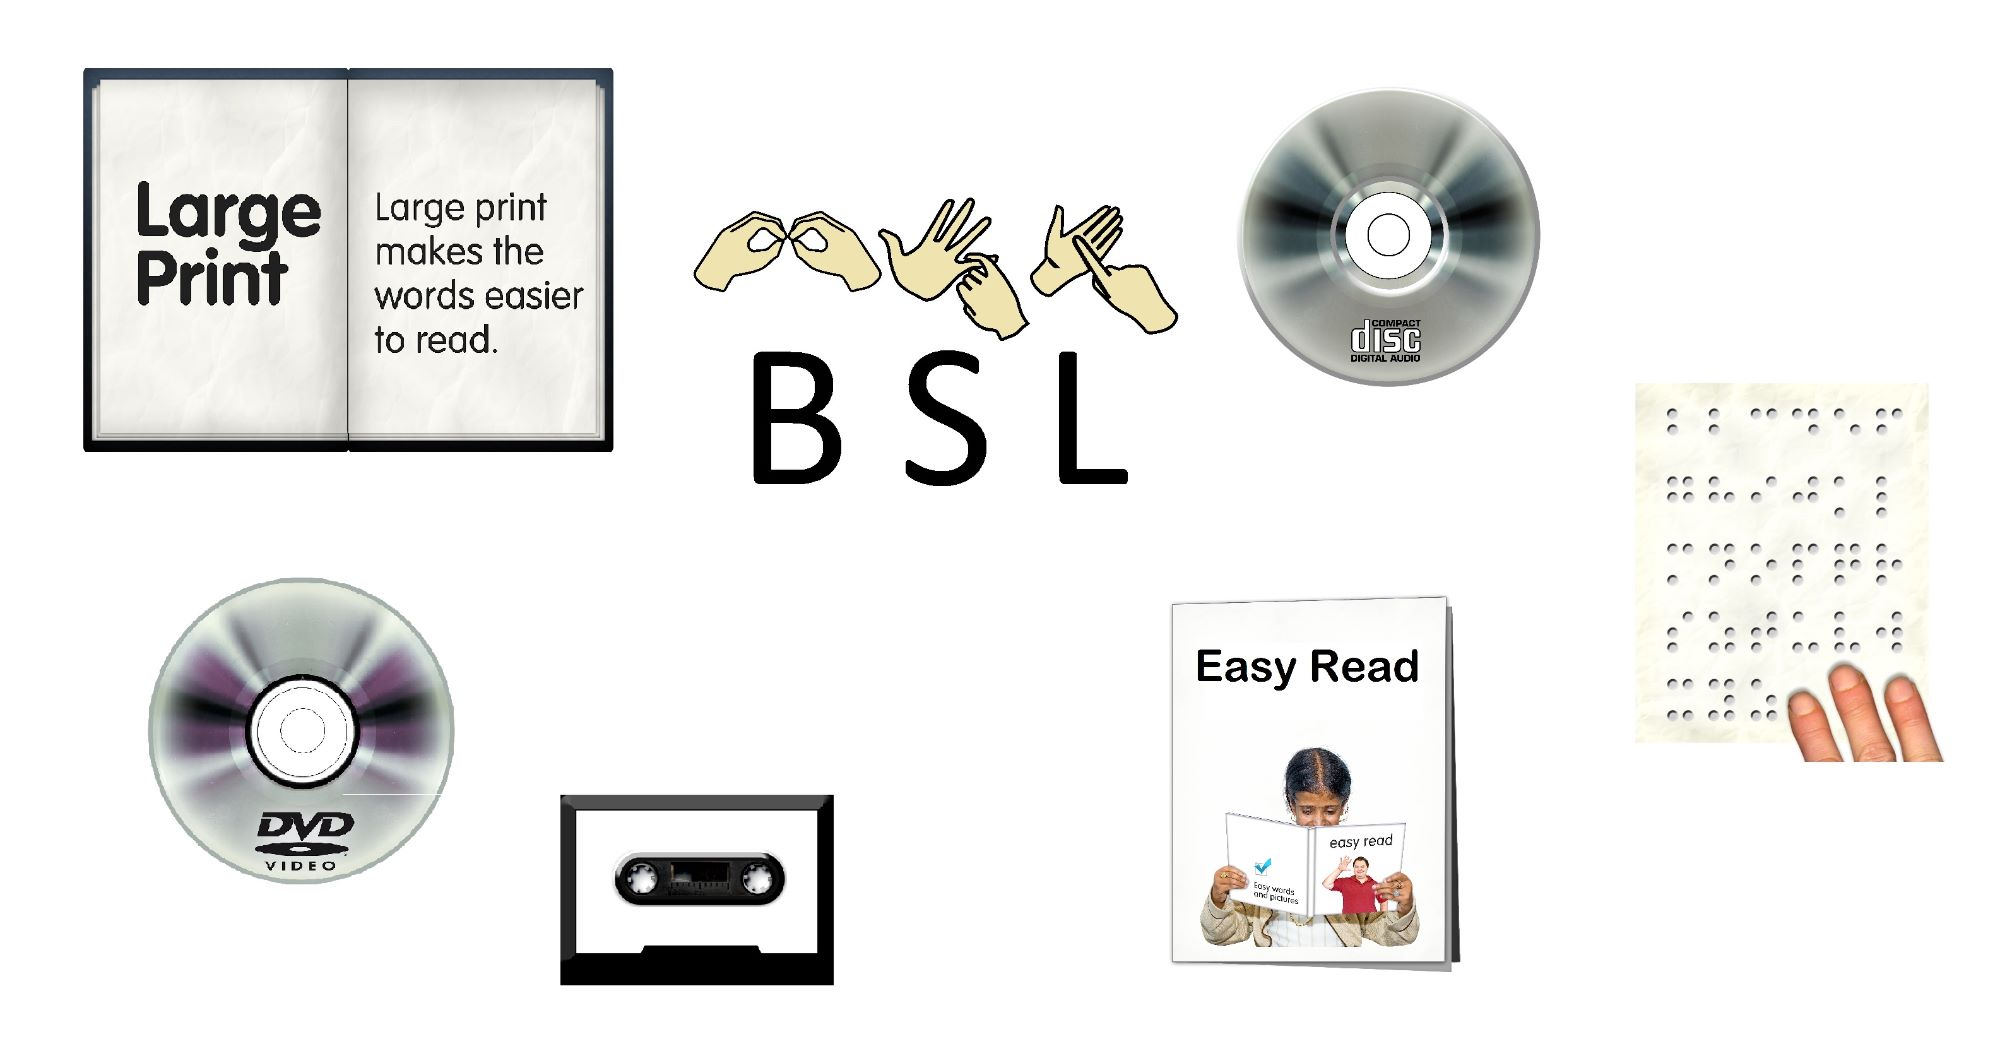 Picture shows some formats produced by Adept: Large Print, BSL, Audio-CD, DVD, Audio-cassette, Easy Read, Braille